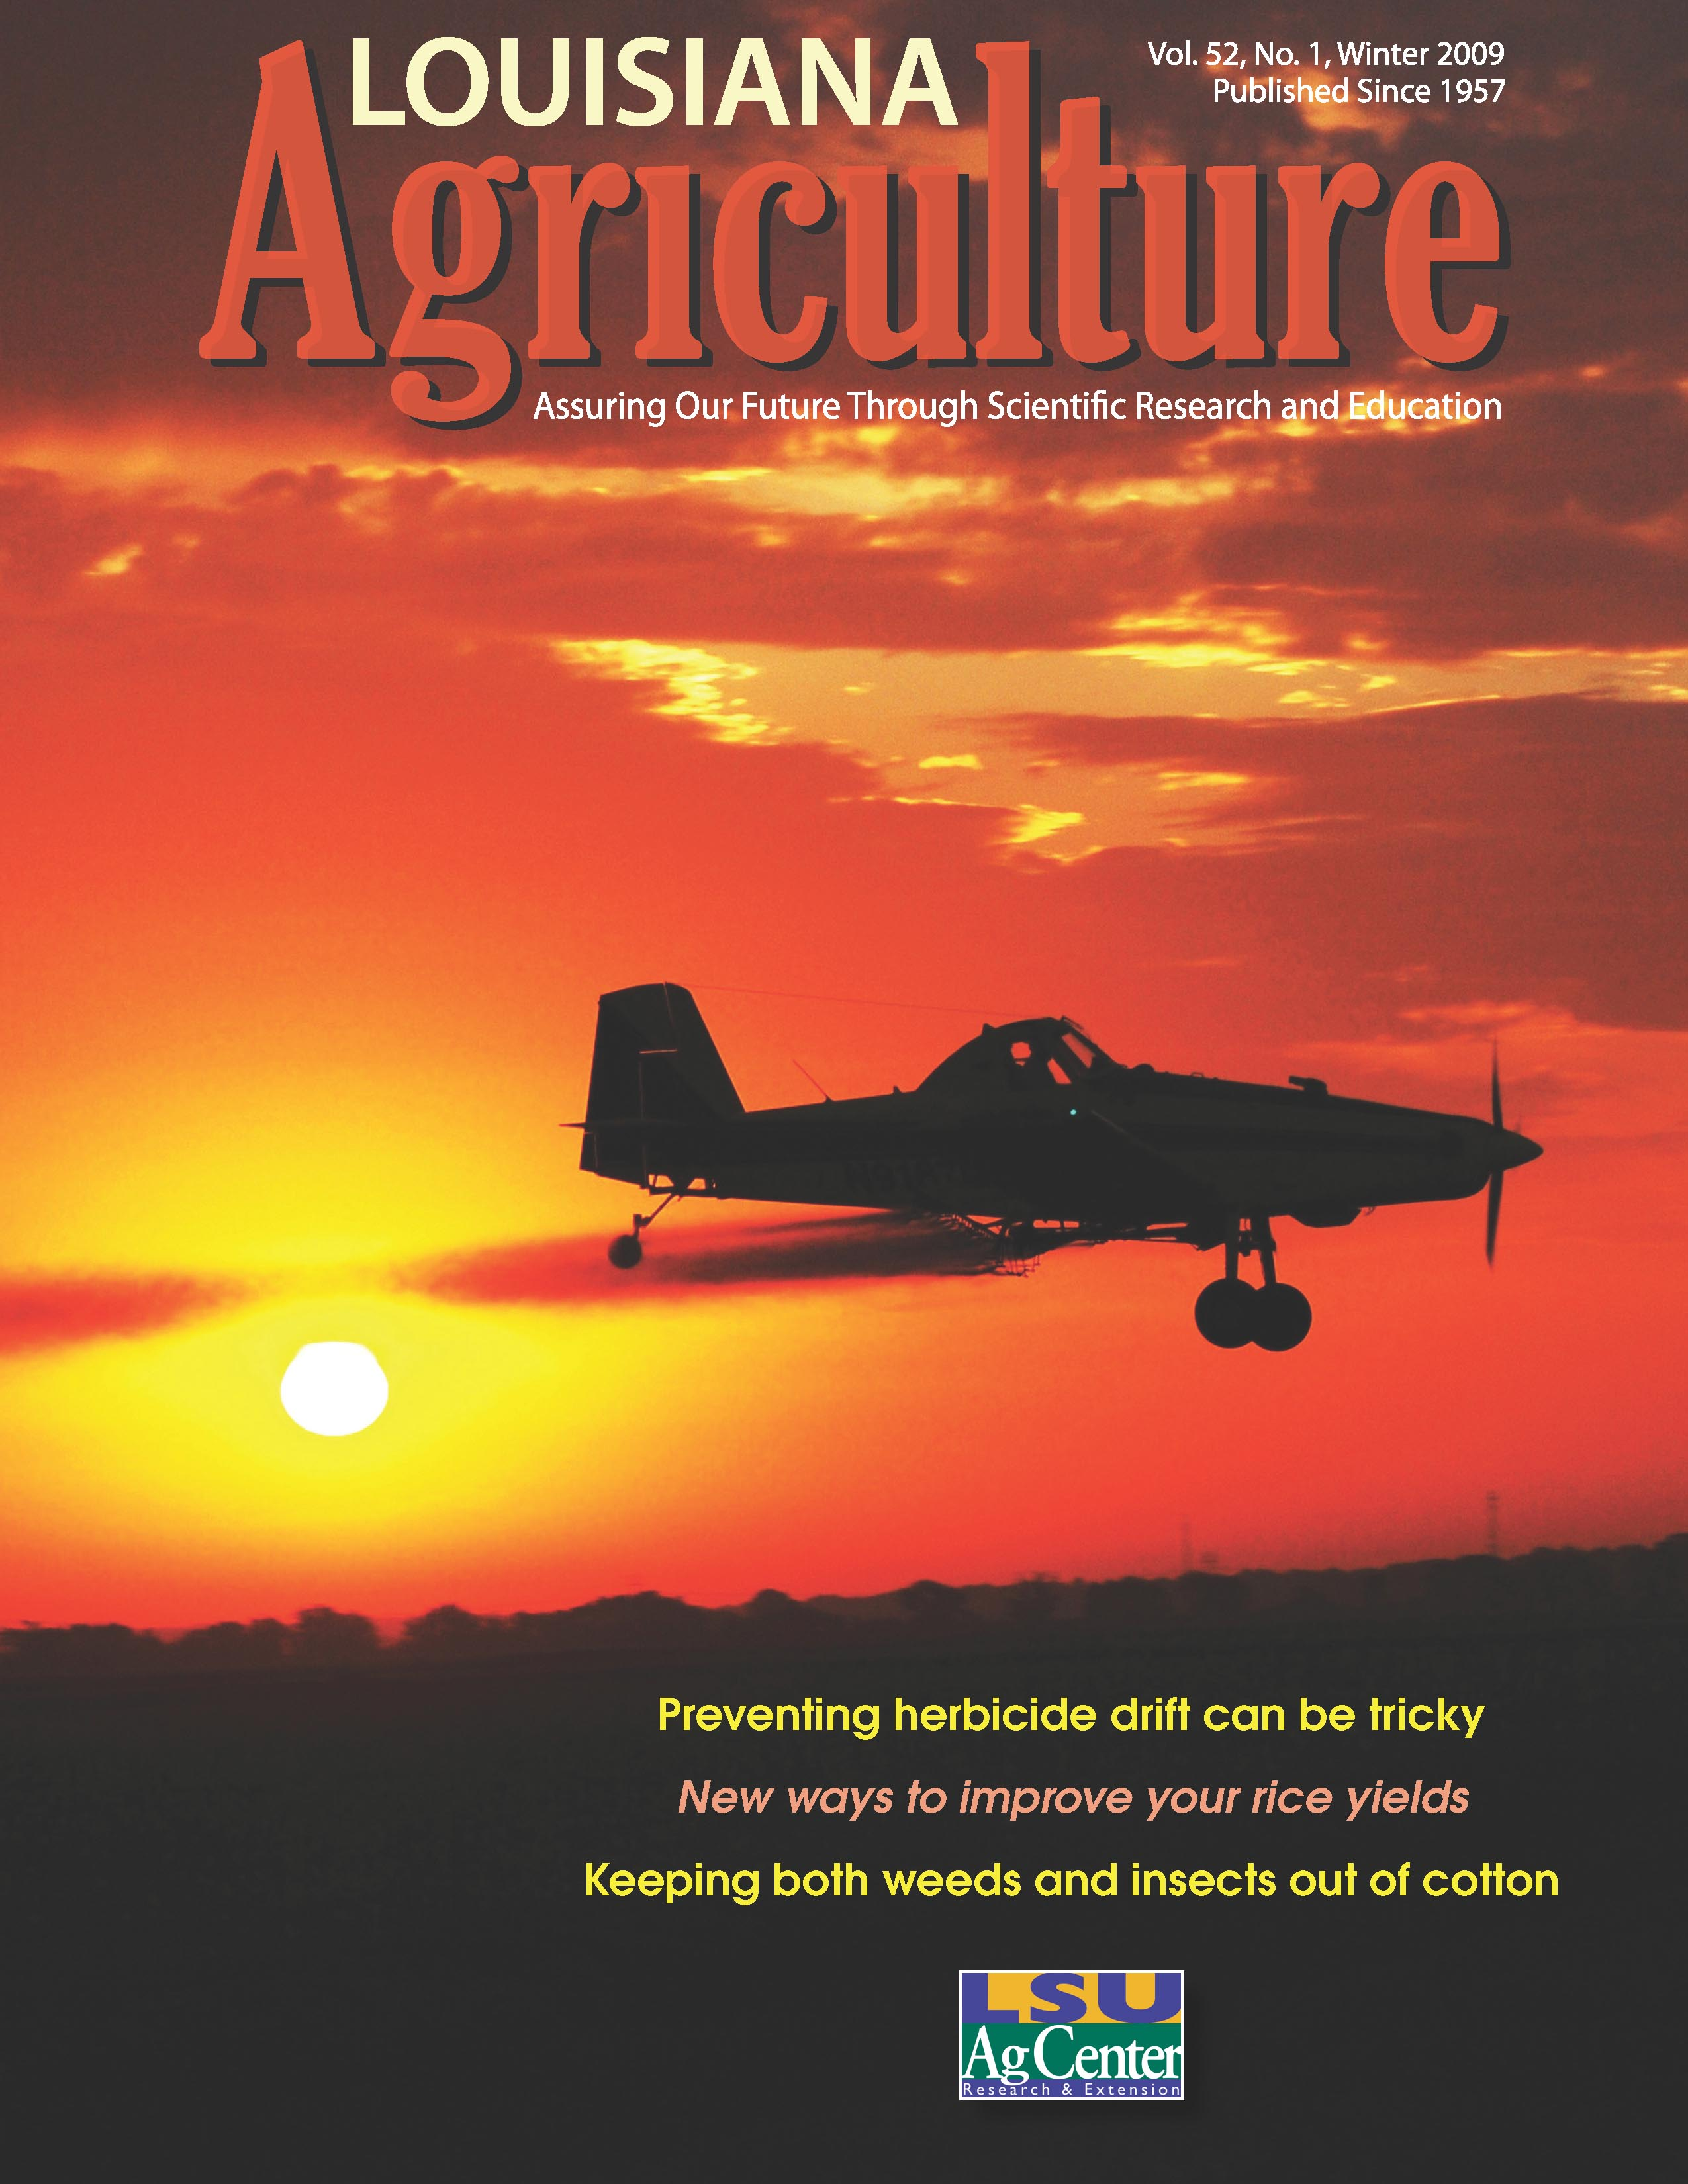 Louisiana Agriculture Magazine winter 2009